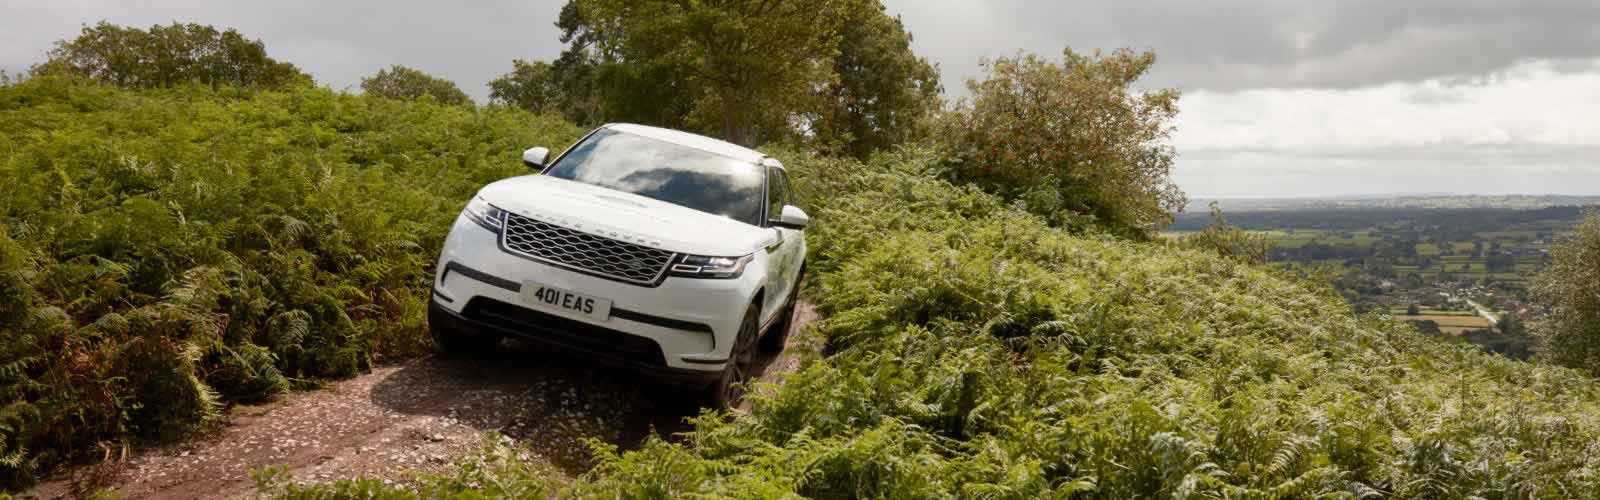 YOUR OPPORTUNITY TO GET BEHIND THE WHEEL OF A LAND ROVER AND HEAD OFF-ROAD FOR AN EXCITING, CHALLENGING DRIVE.<br><br>